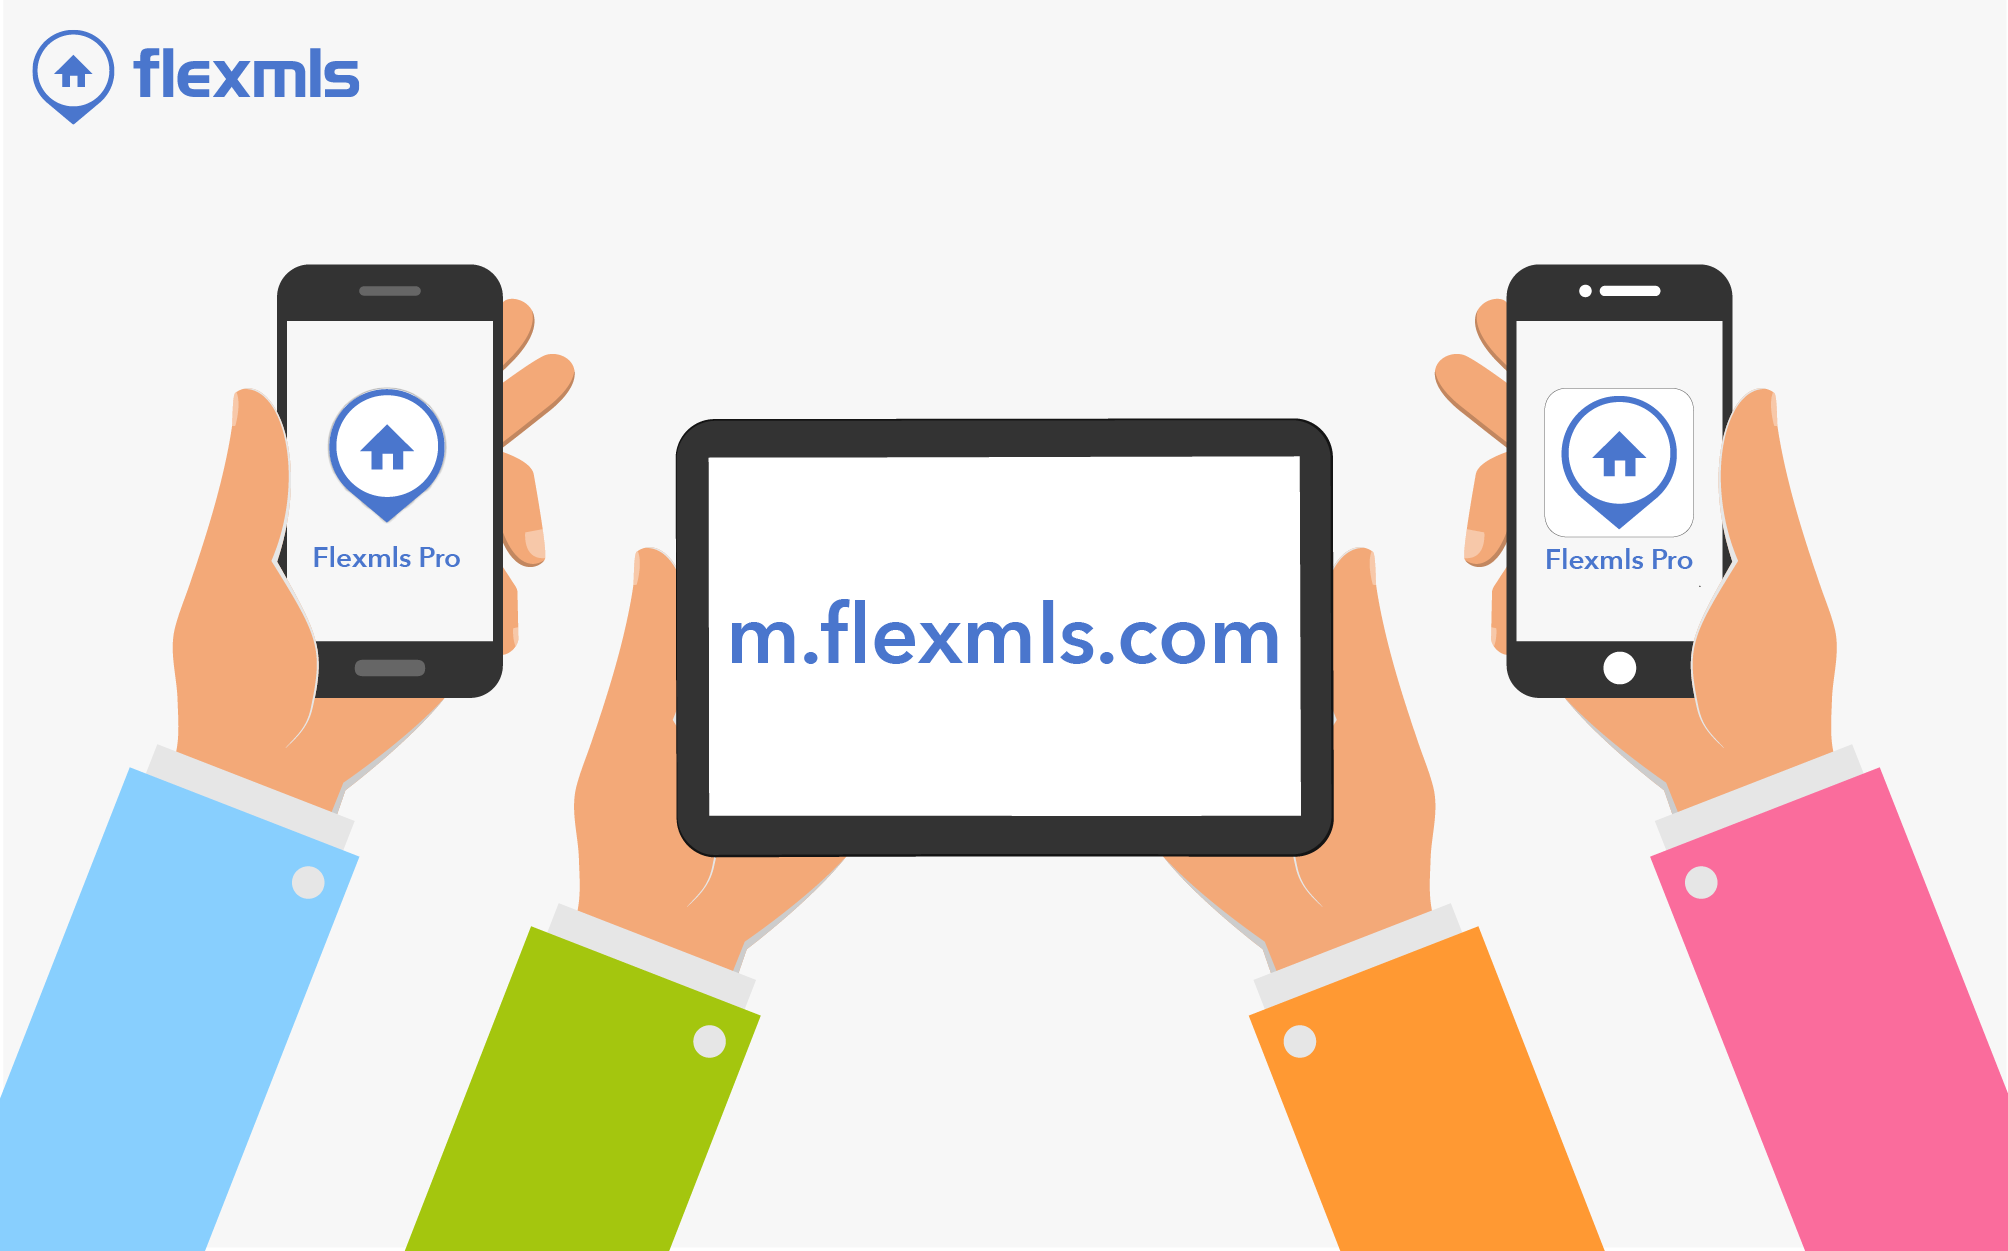 Are you on Flexmls Mobile?